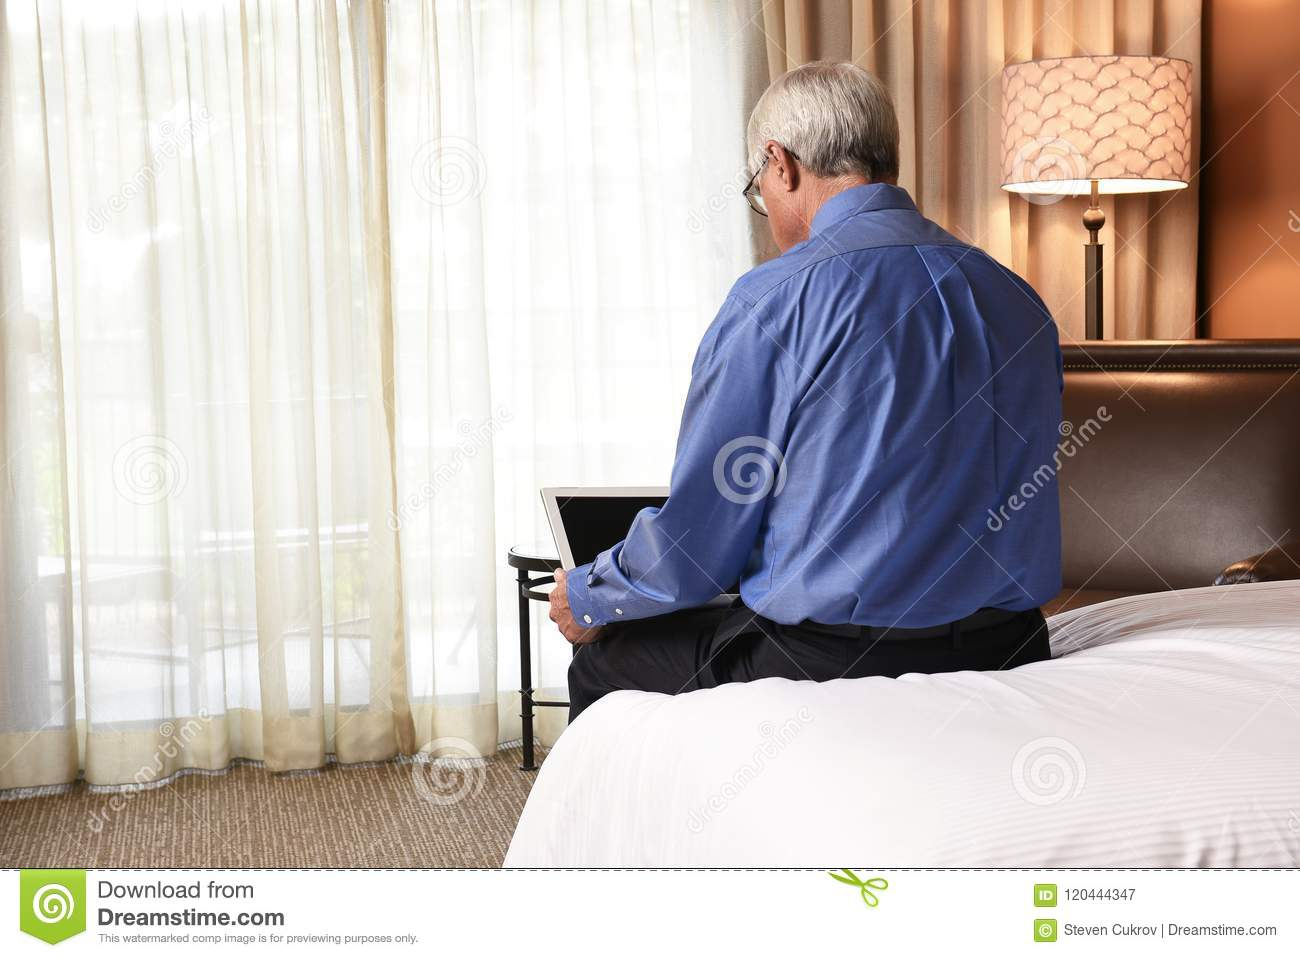 Businessman sitting on the bed in his hotel room using his laptop